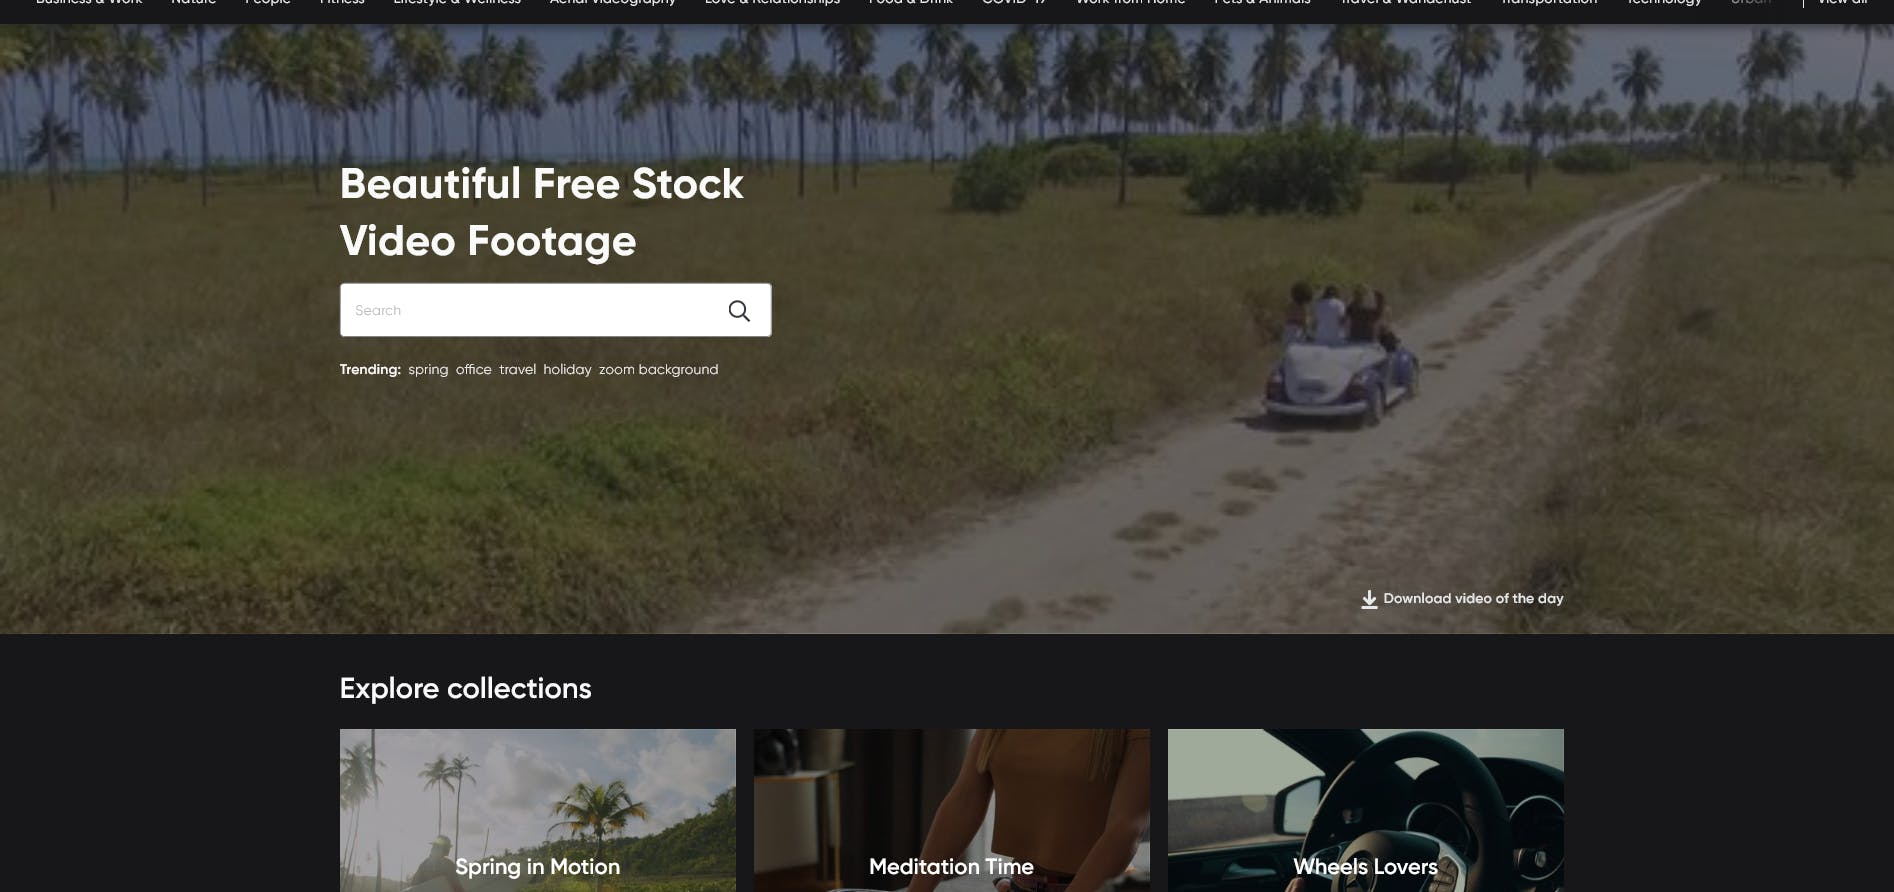 Screenshot 2021-04-30 at 08-20-22 Free Stock Footage Royalty Free Videos for Download Coverr.png